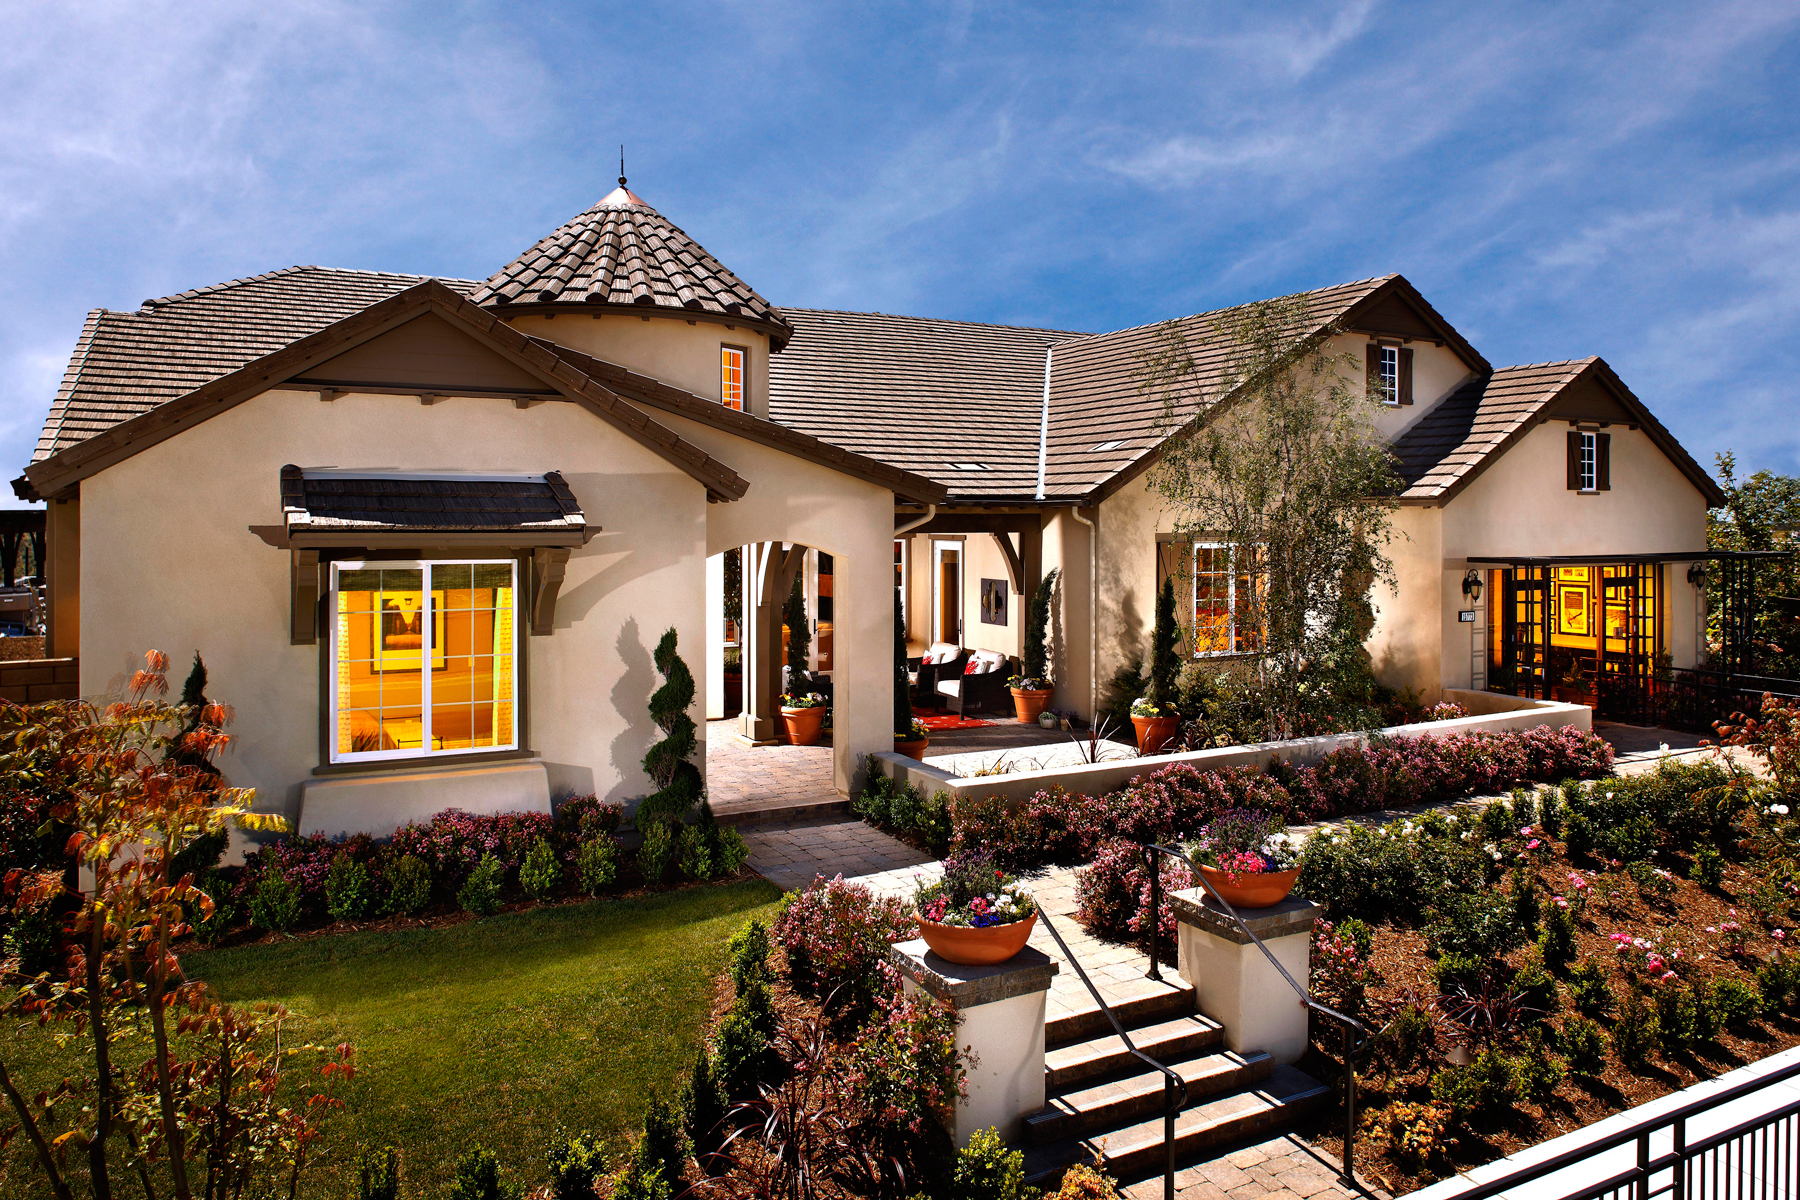 San Go Ca Standard Pacific Homes One Of The Nation S Leading Luxury Homebuilders Recently Announced Plans To Launch At Bellasario